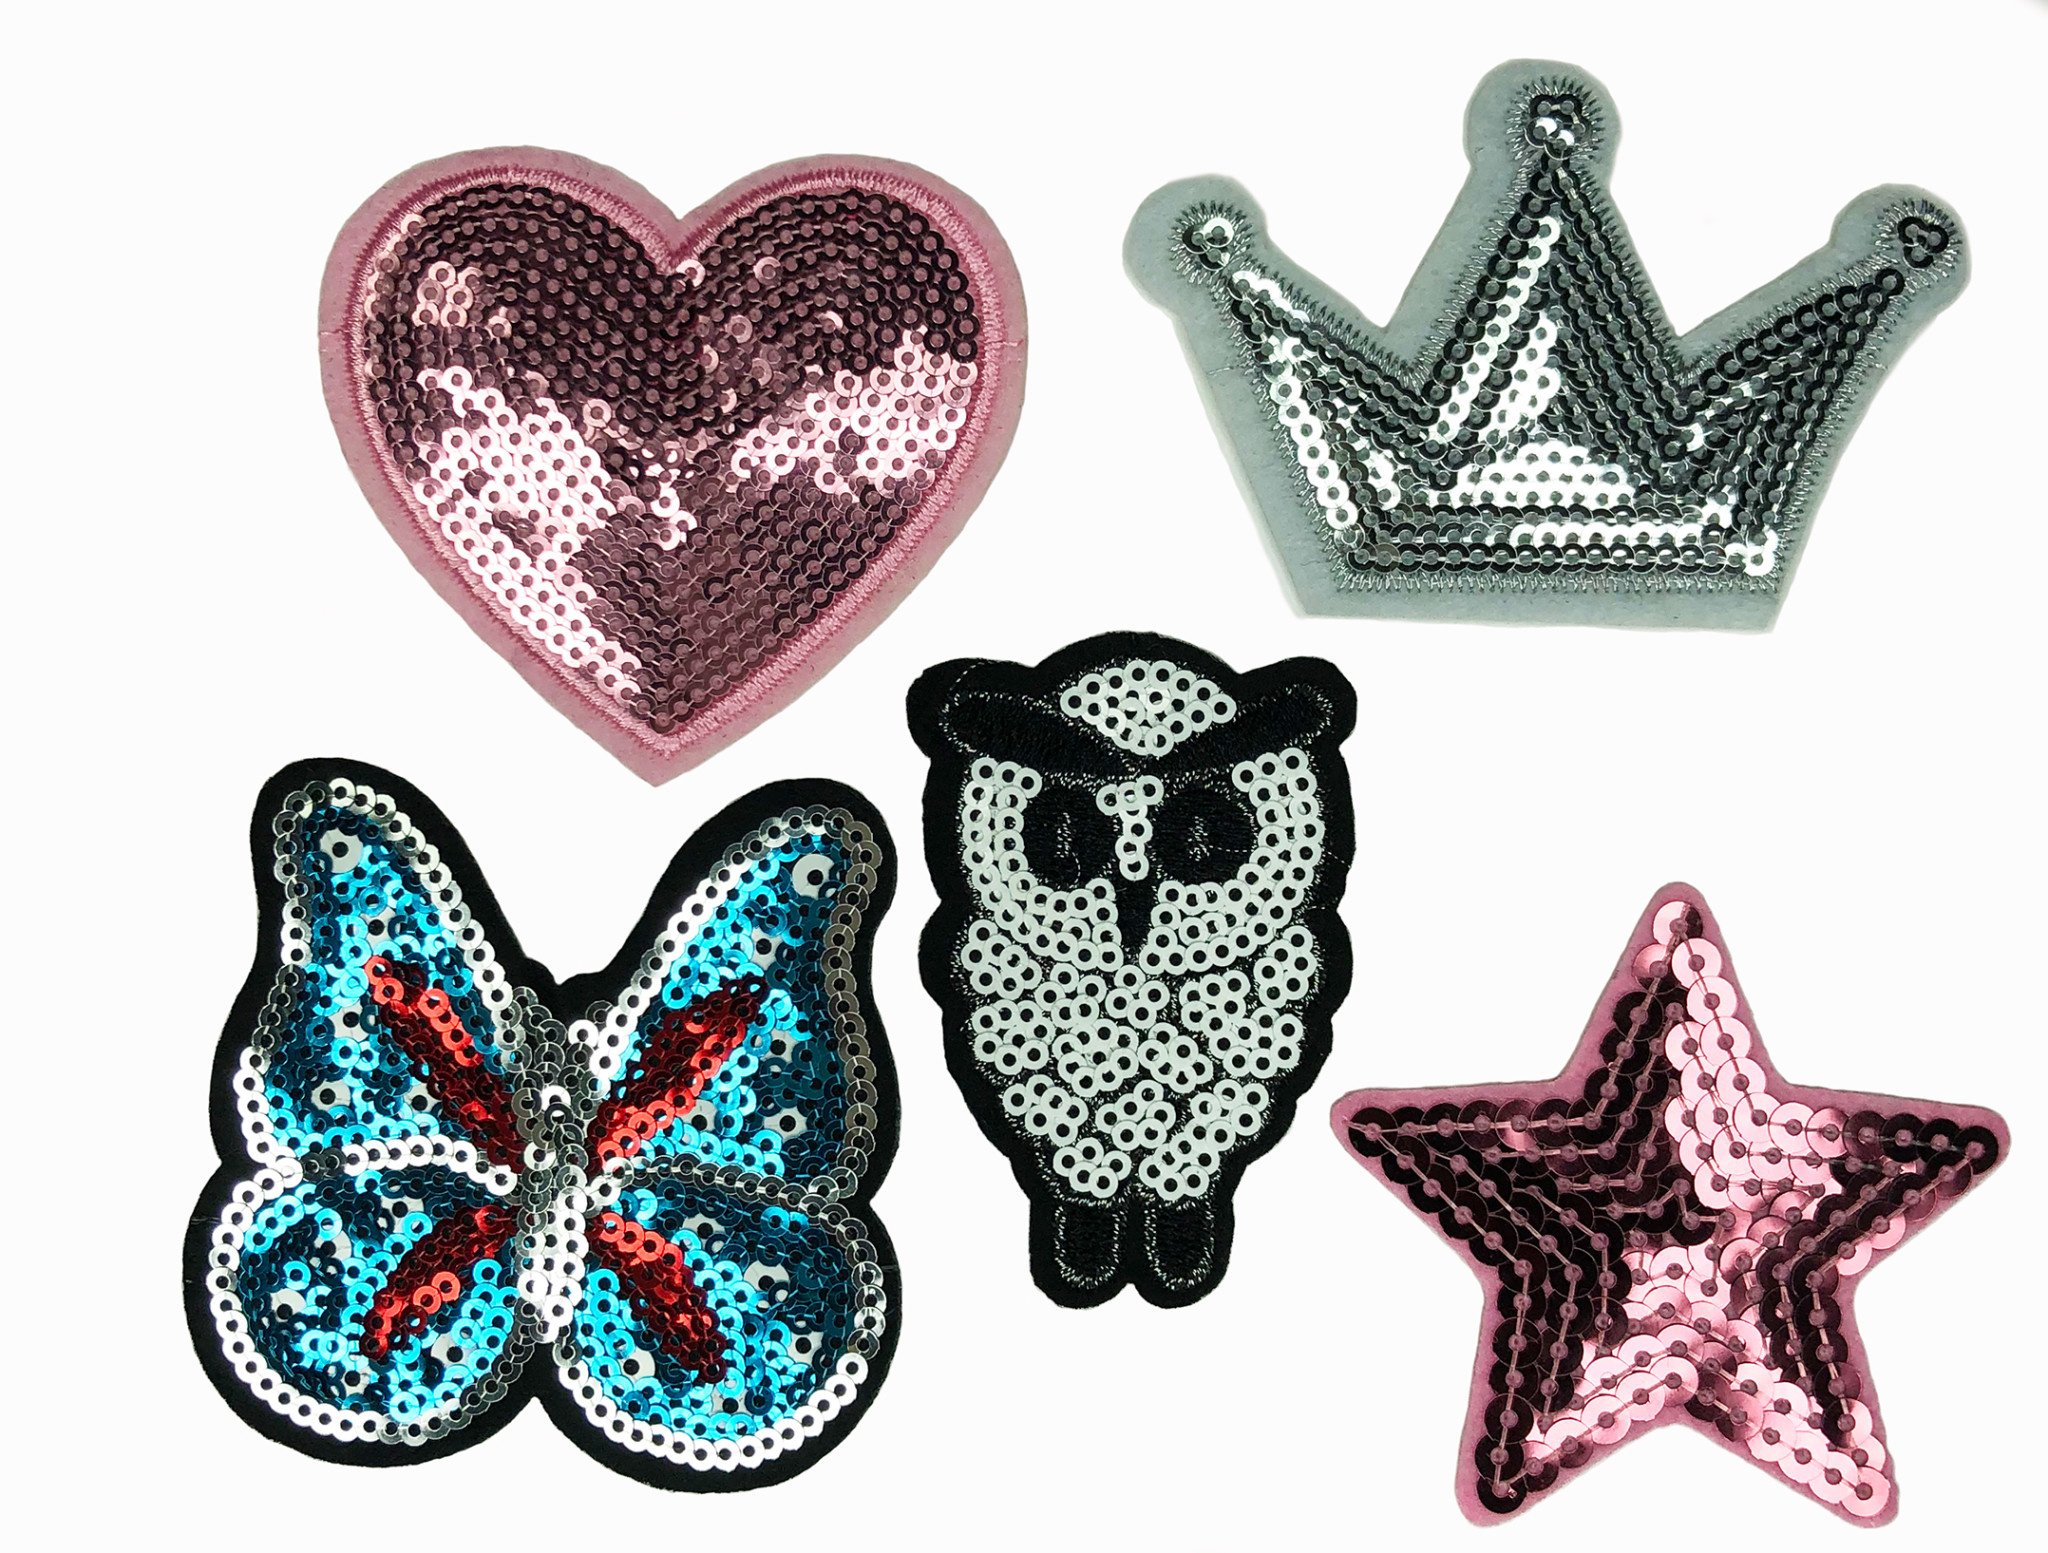 THE SHOP 6 SEQUIN PATCHES-1